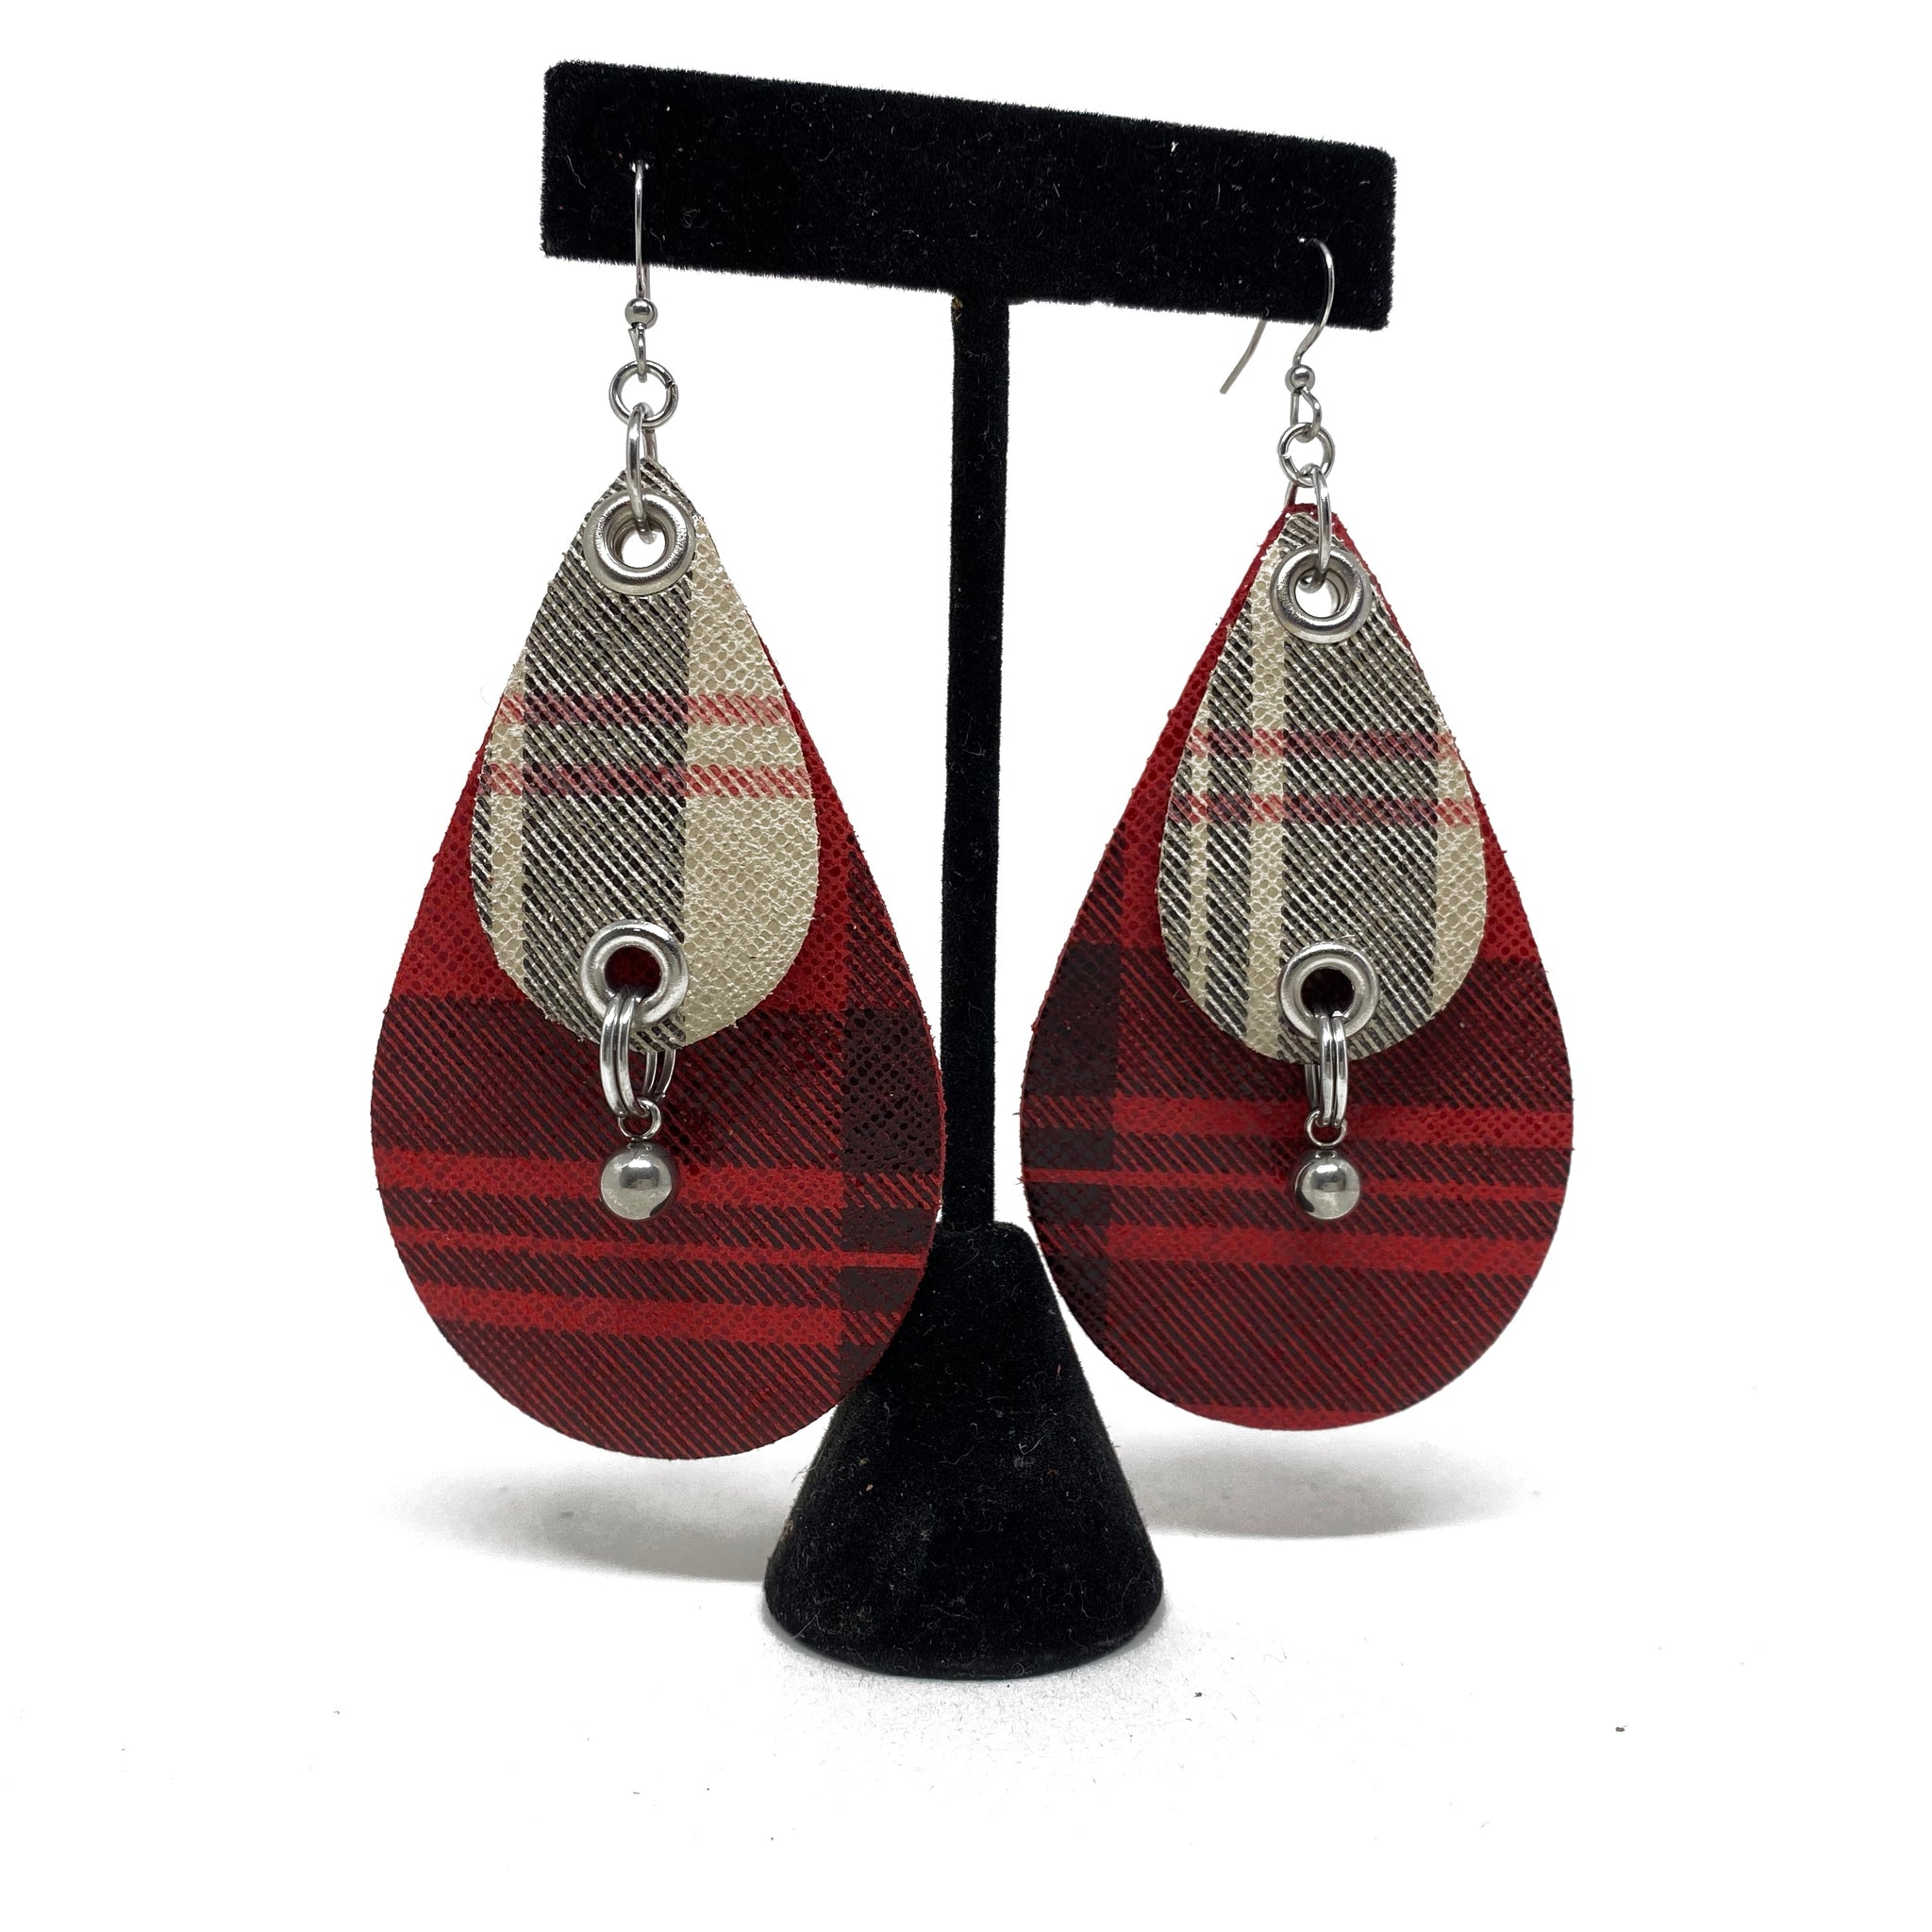 Plaid leather earrings by NYET Jewelry